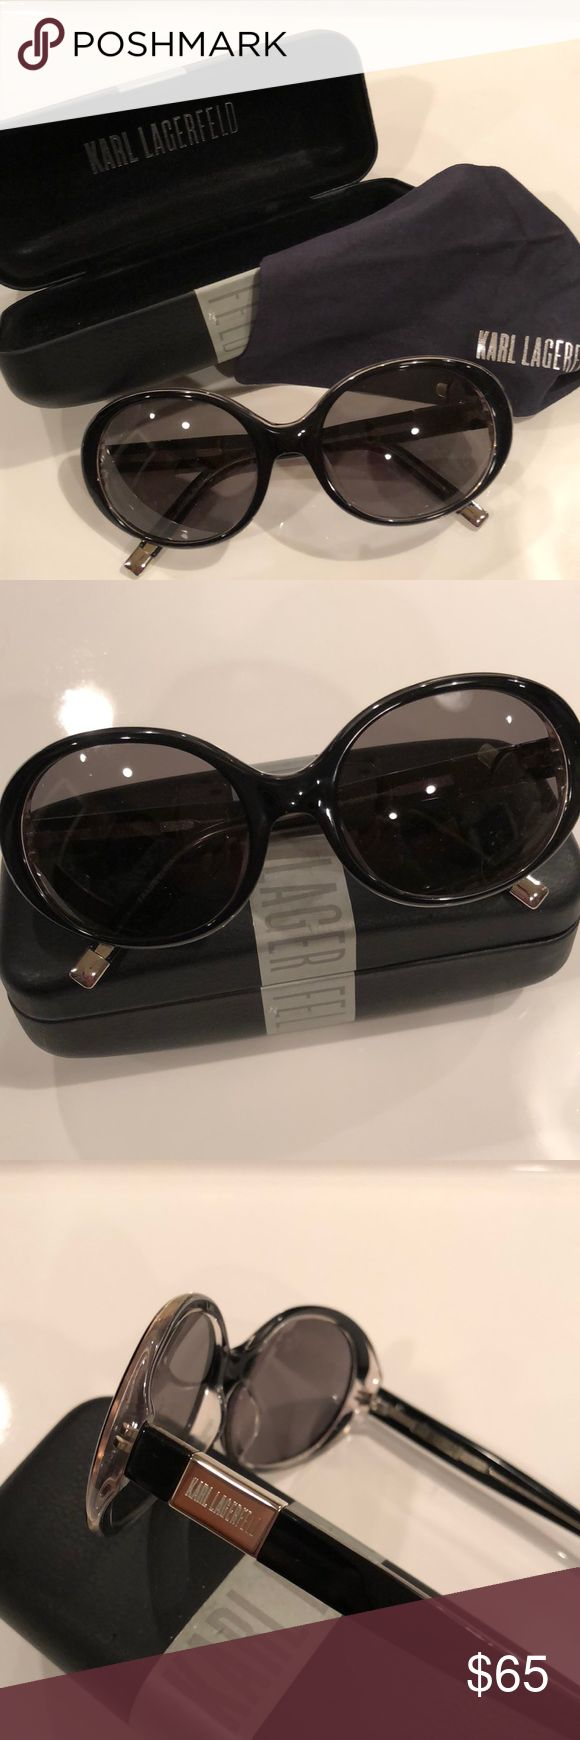 Karl Lagerfeld iconic sunglasses Beautiful  Karl Lagerfeld sunglasses  Worn once  Color :  Black and clear  Silver tips on arms and a KL engraved logo on one side  Model : KL 602 S 003  Oval Frames  Includes original  case and eyeglass cleaning cloth as pictured. Karl Lagerfeld Accessories Sunglasses